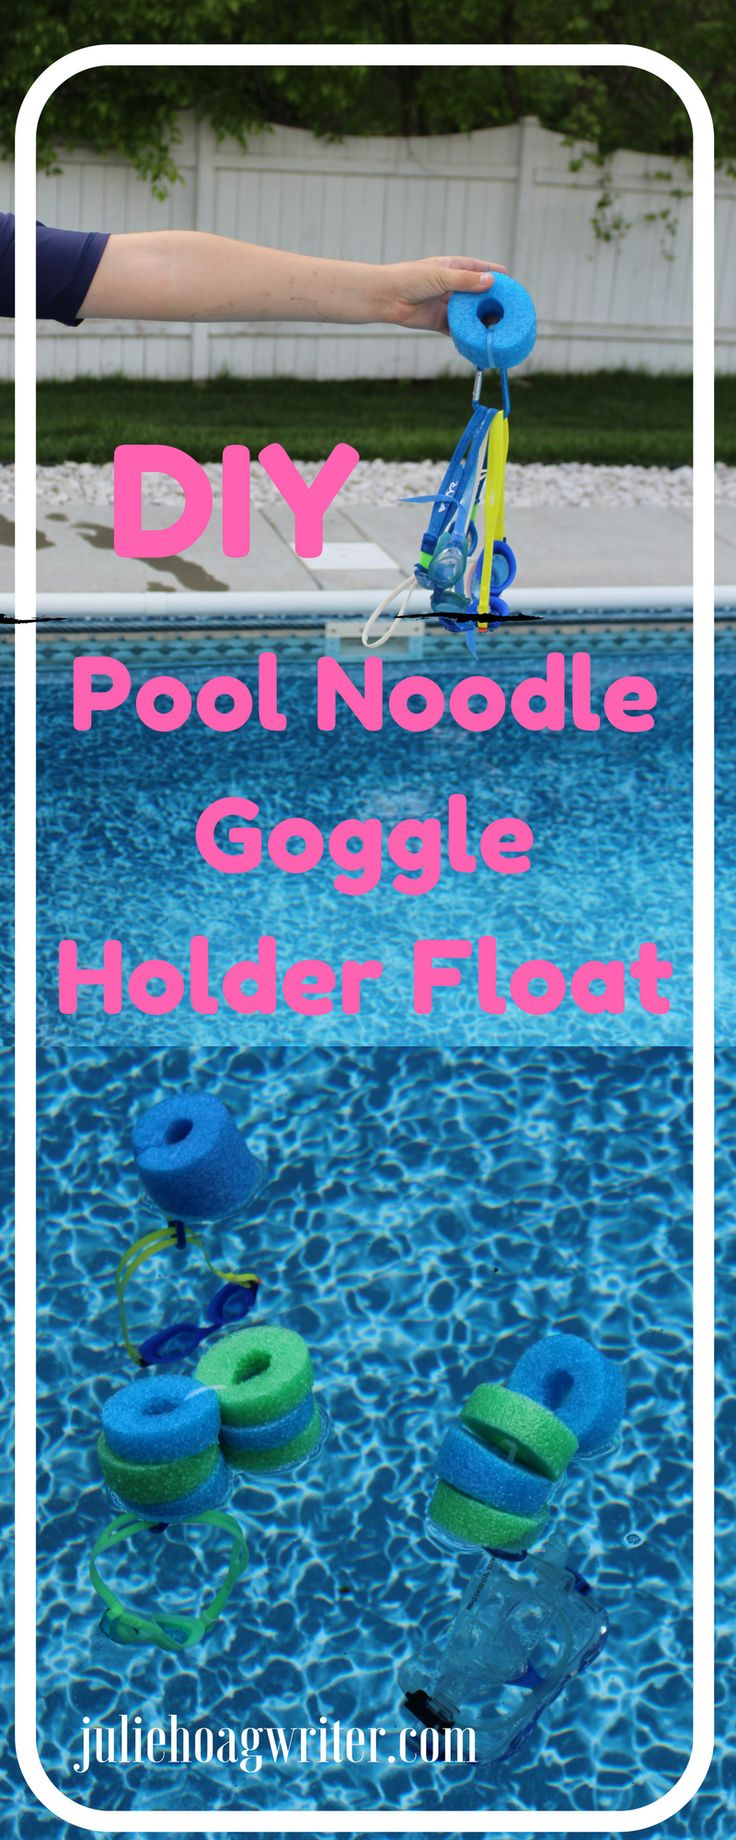 DIY Pool Noodle Goggle Holder Float   family   kids   pool ideas   pools backyard   pool noodle ideas   pool noodle crafts  family fun   kids and family   pool noodles   diy crafts   diy pool ideas   pool time   pool time ideas   swim time   goggles swimming   goggles DIY   pool floats   pool floats for kids   pool floats awesome   swimming   affiliate   lake swimming   summer fun   summer fun ideas   summer crafts kids